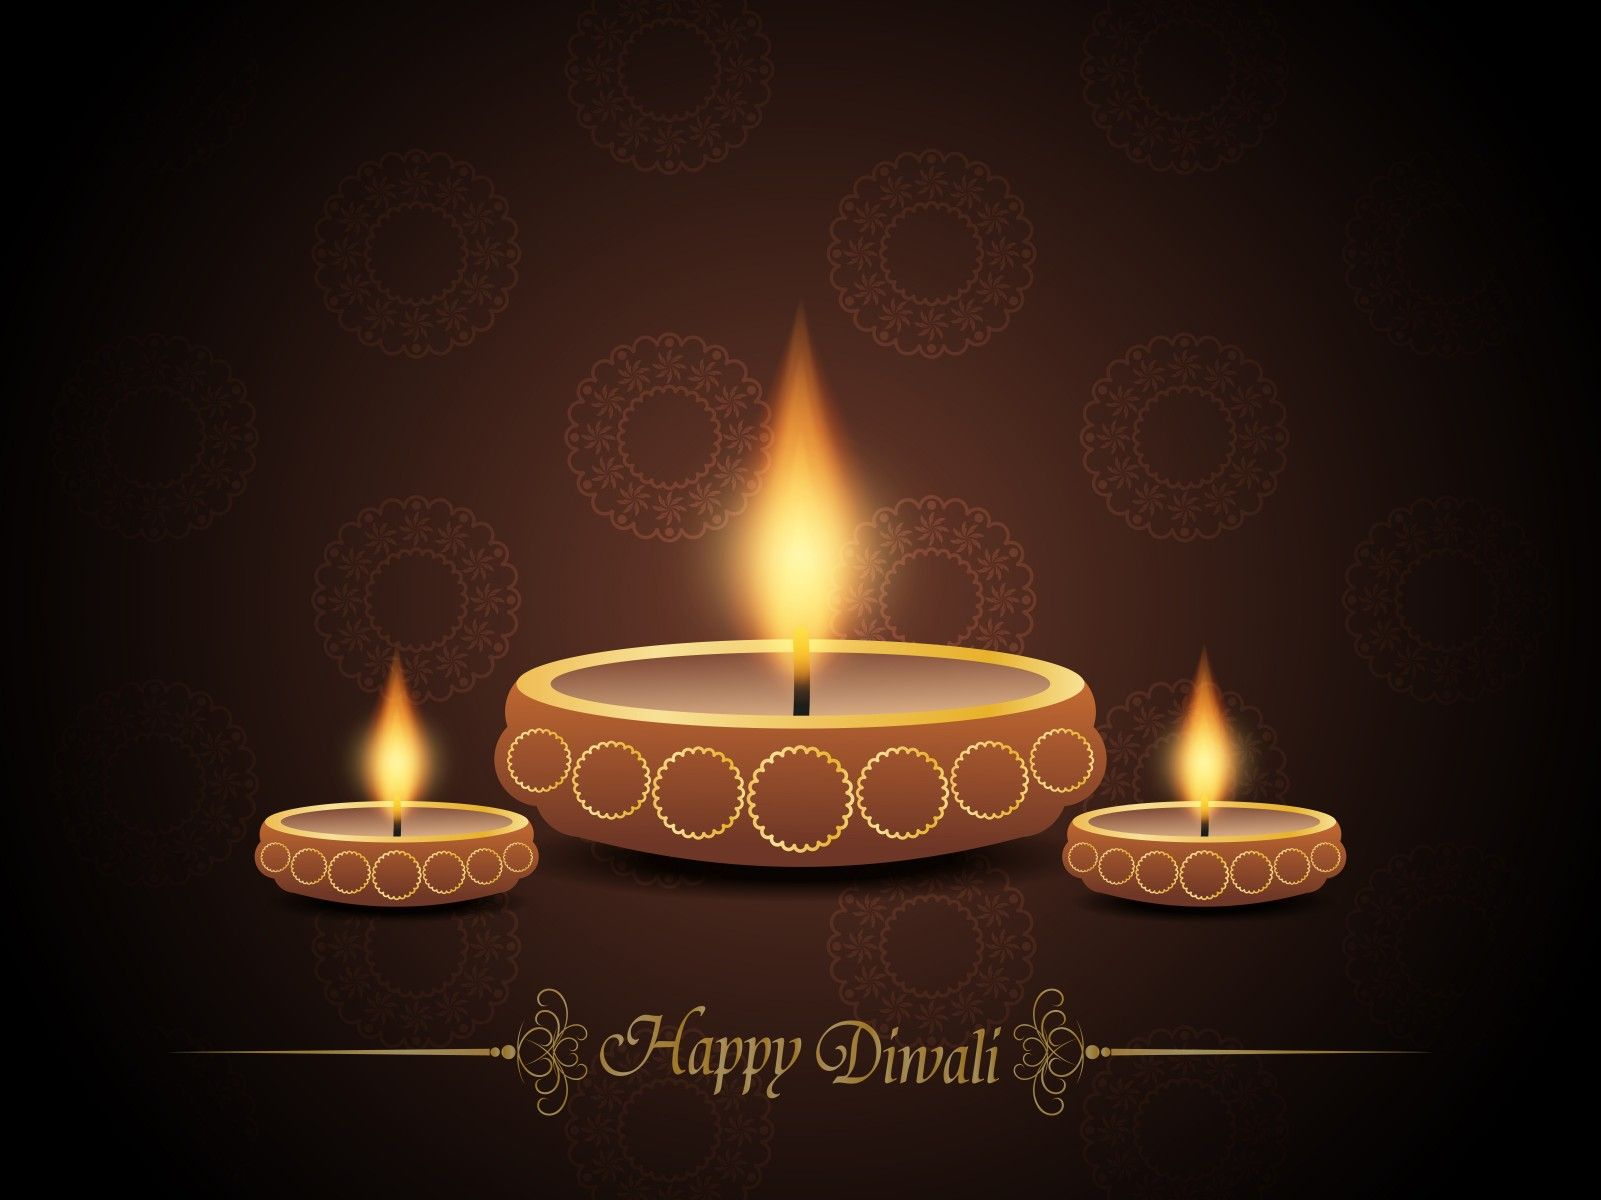 The Divine Lights Of Diwali Bring To Your Life Peace Prosperity And